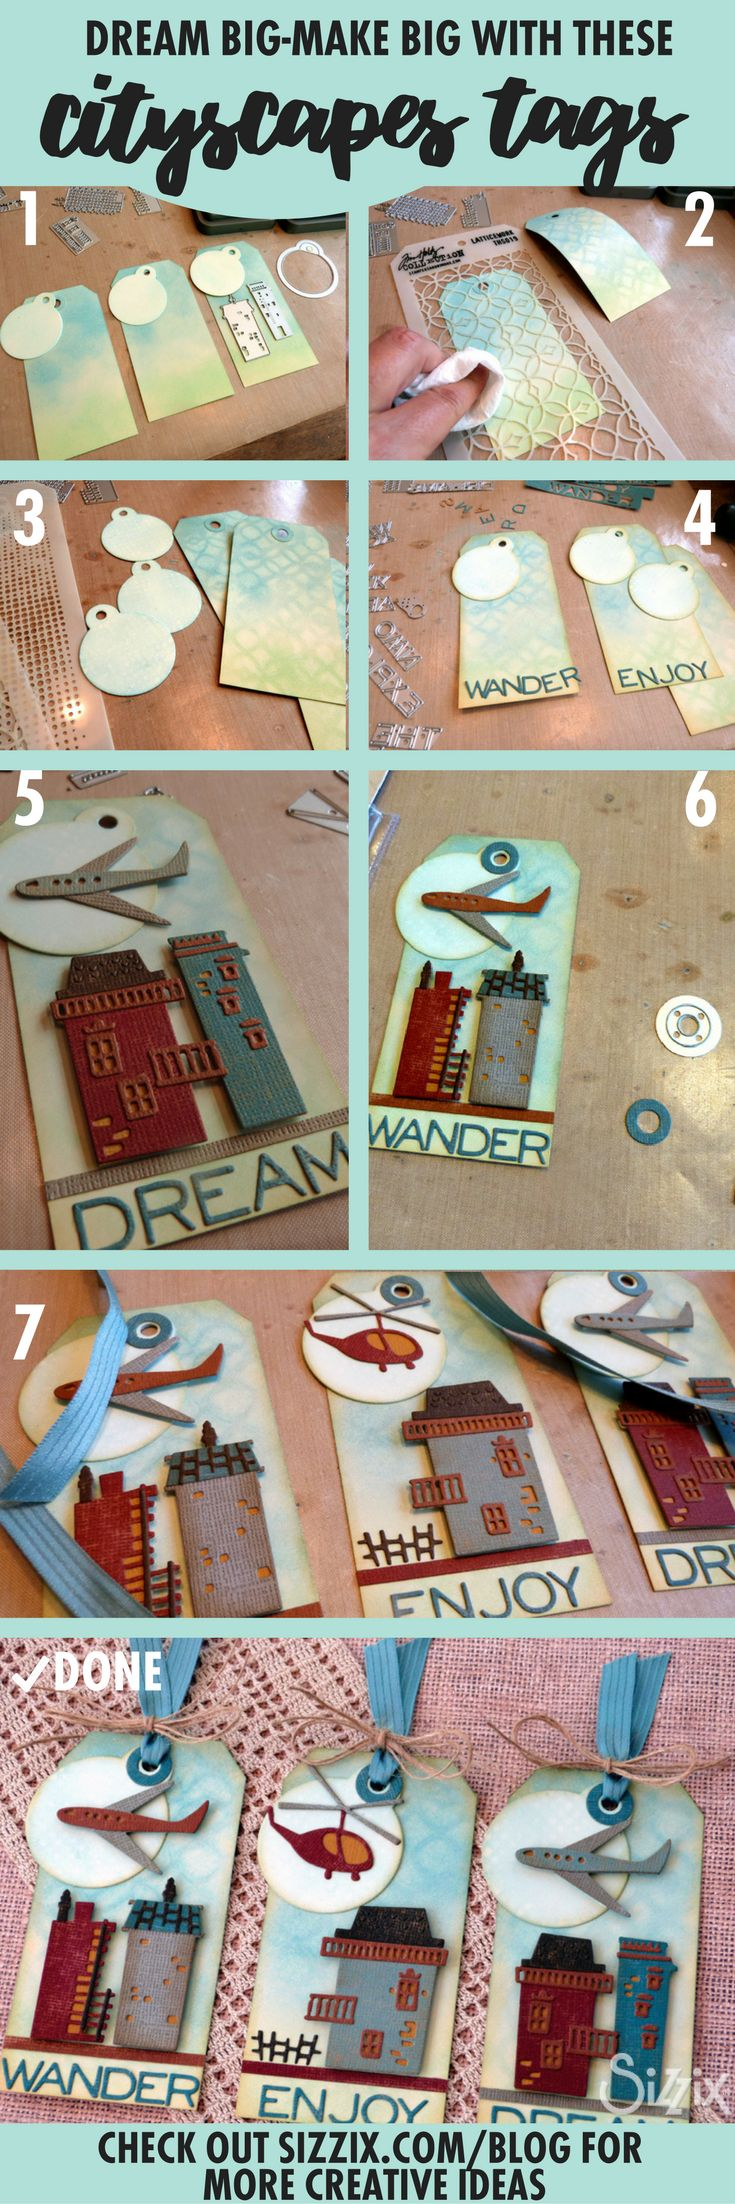 Dream Big - Make Big With These Cityscapes Tags by Audrey Featuring Tim Holtz Cityscapes Sizzix die!